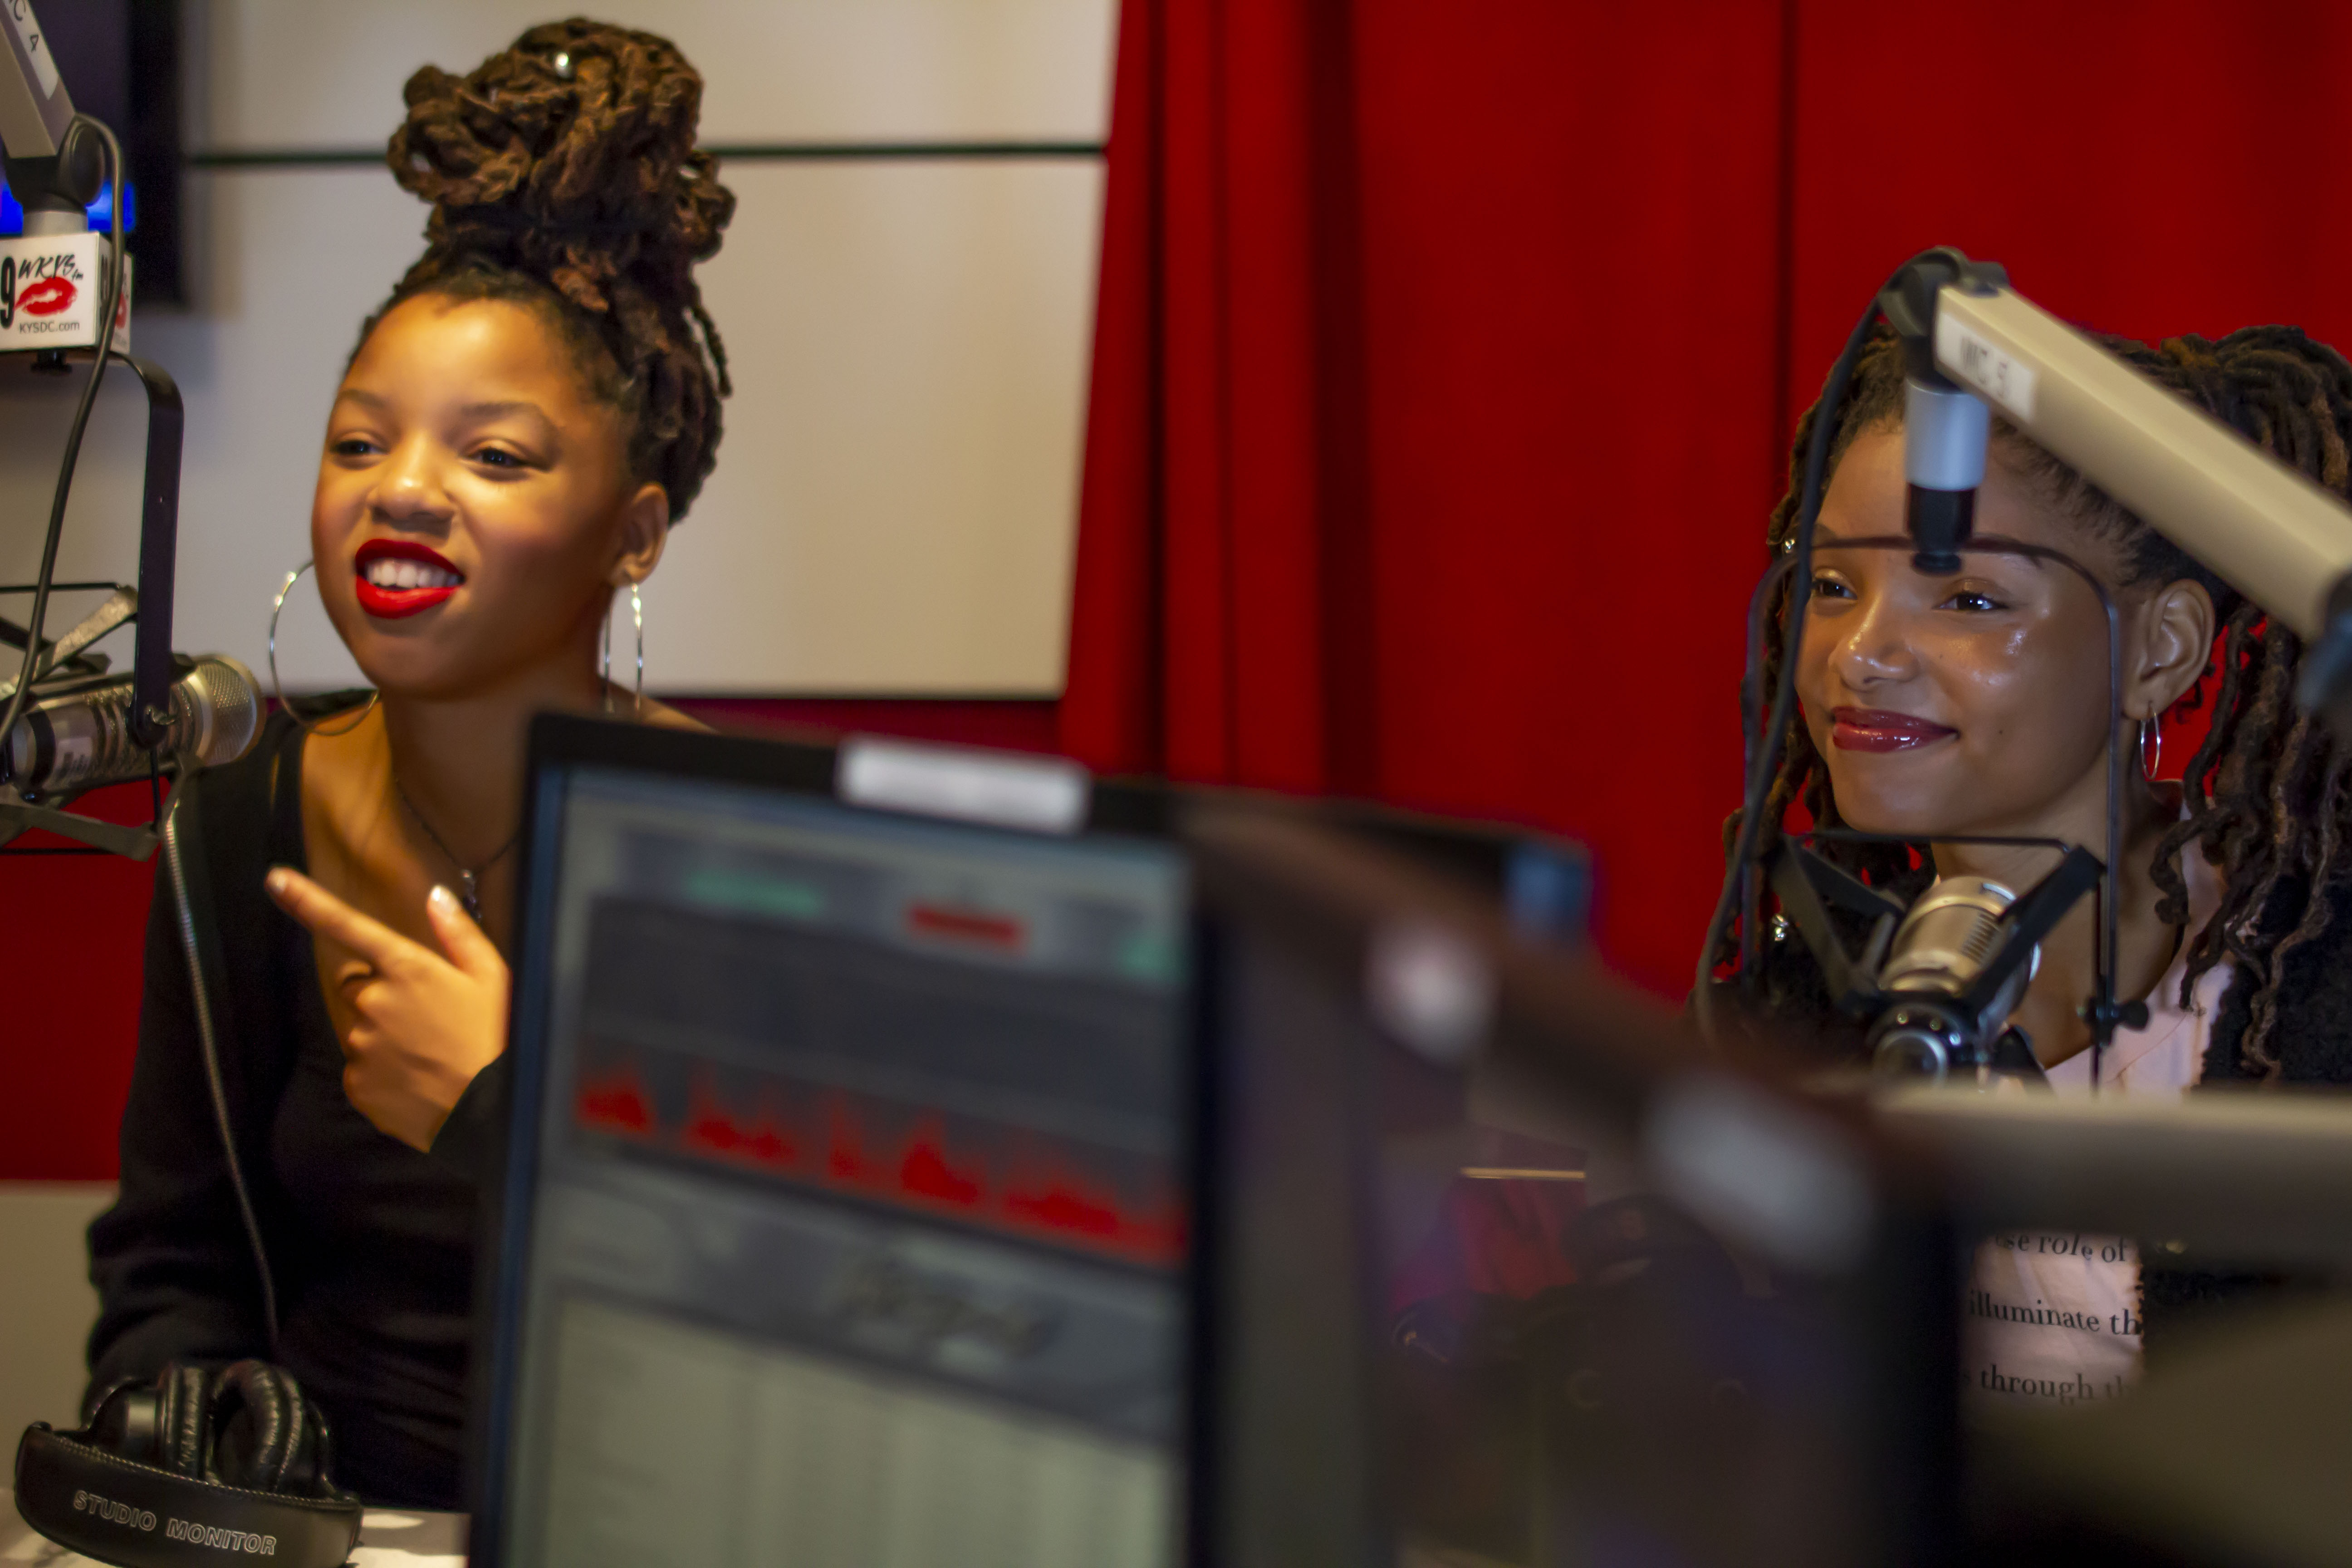 Chloe x Halle (WKYS) on Angie Ange in the Morning